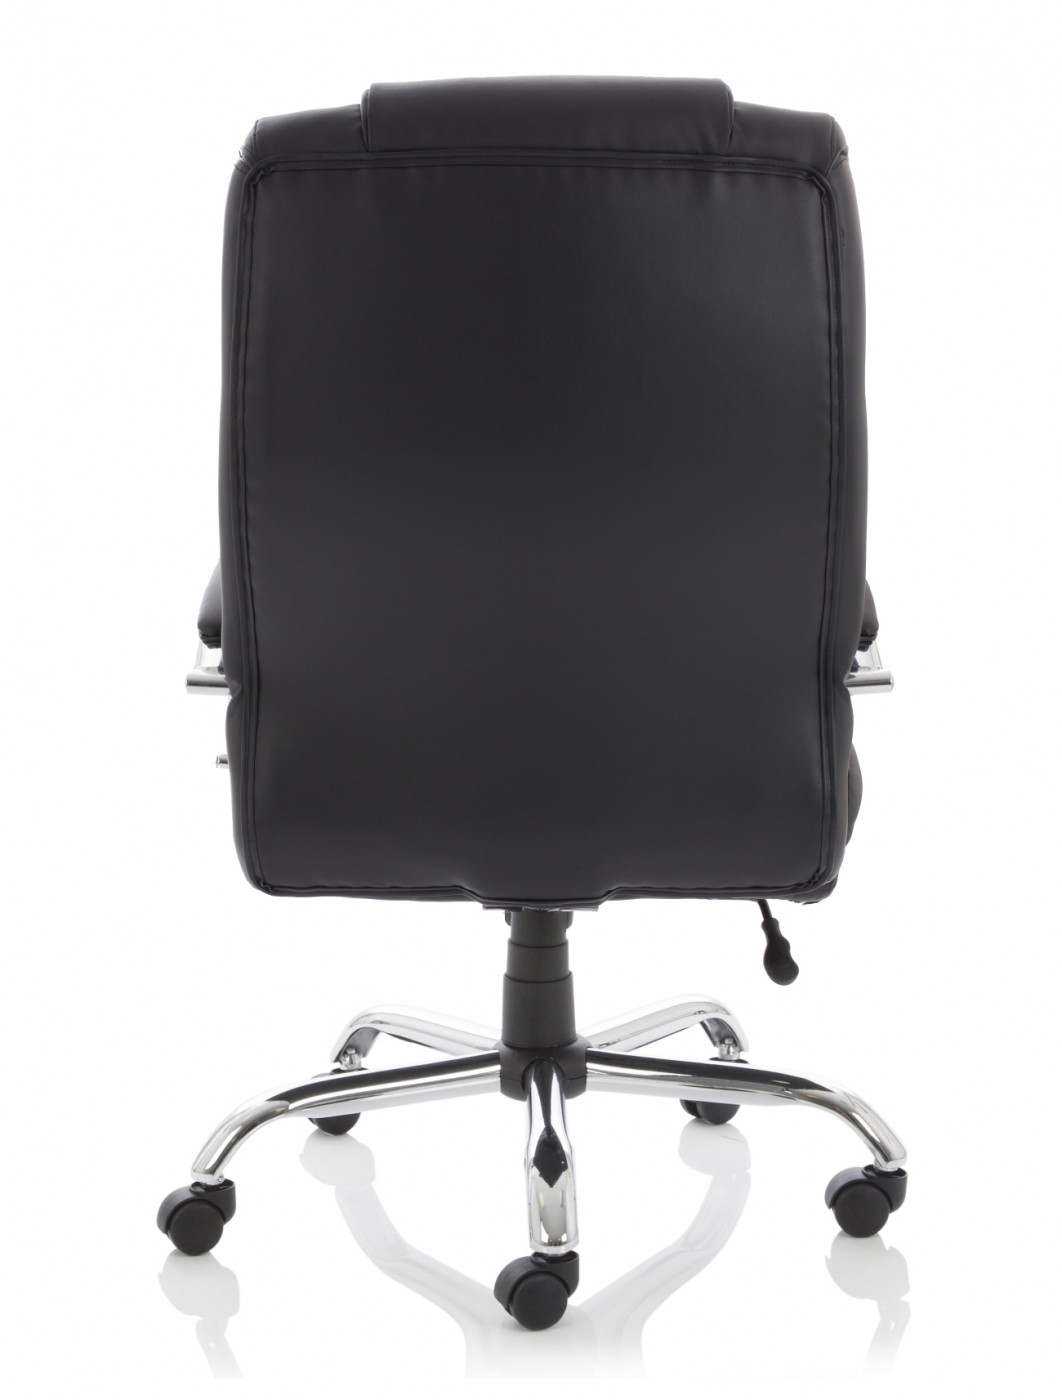 durable office chairs evenflo modern high chair recall dynamic texas heavy duty leather ex00011